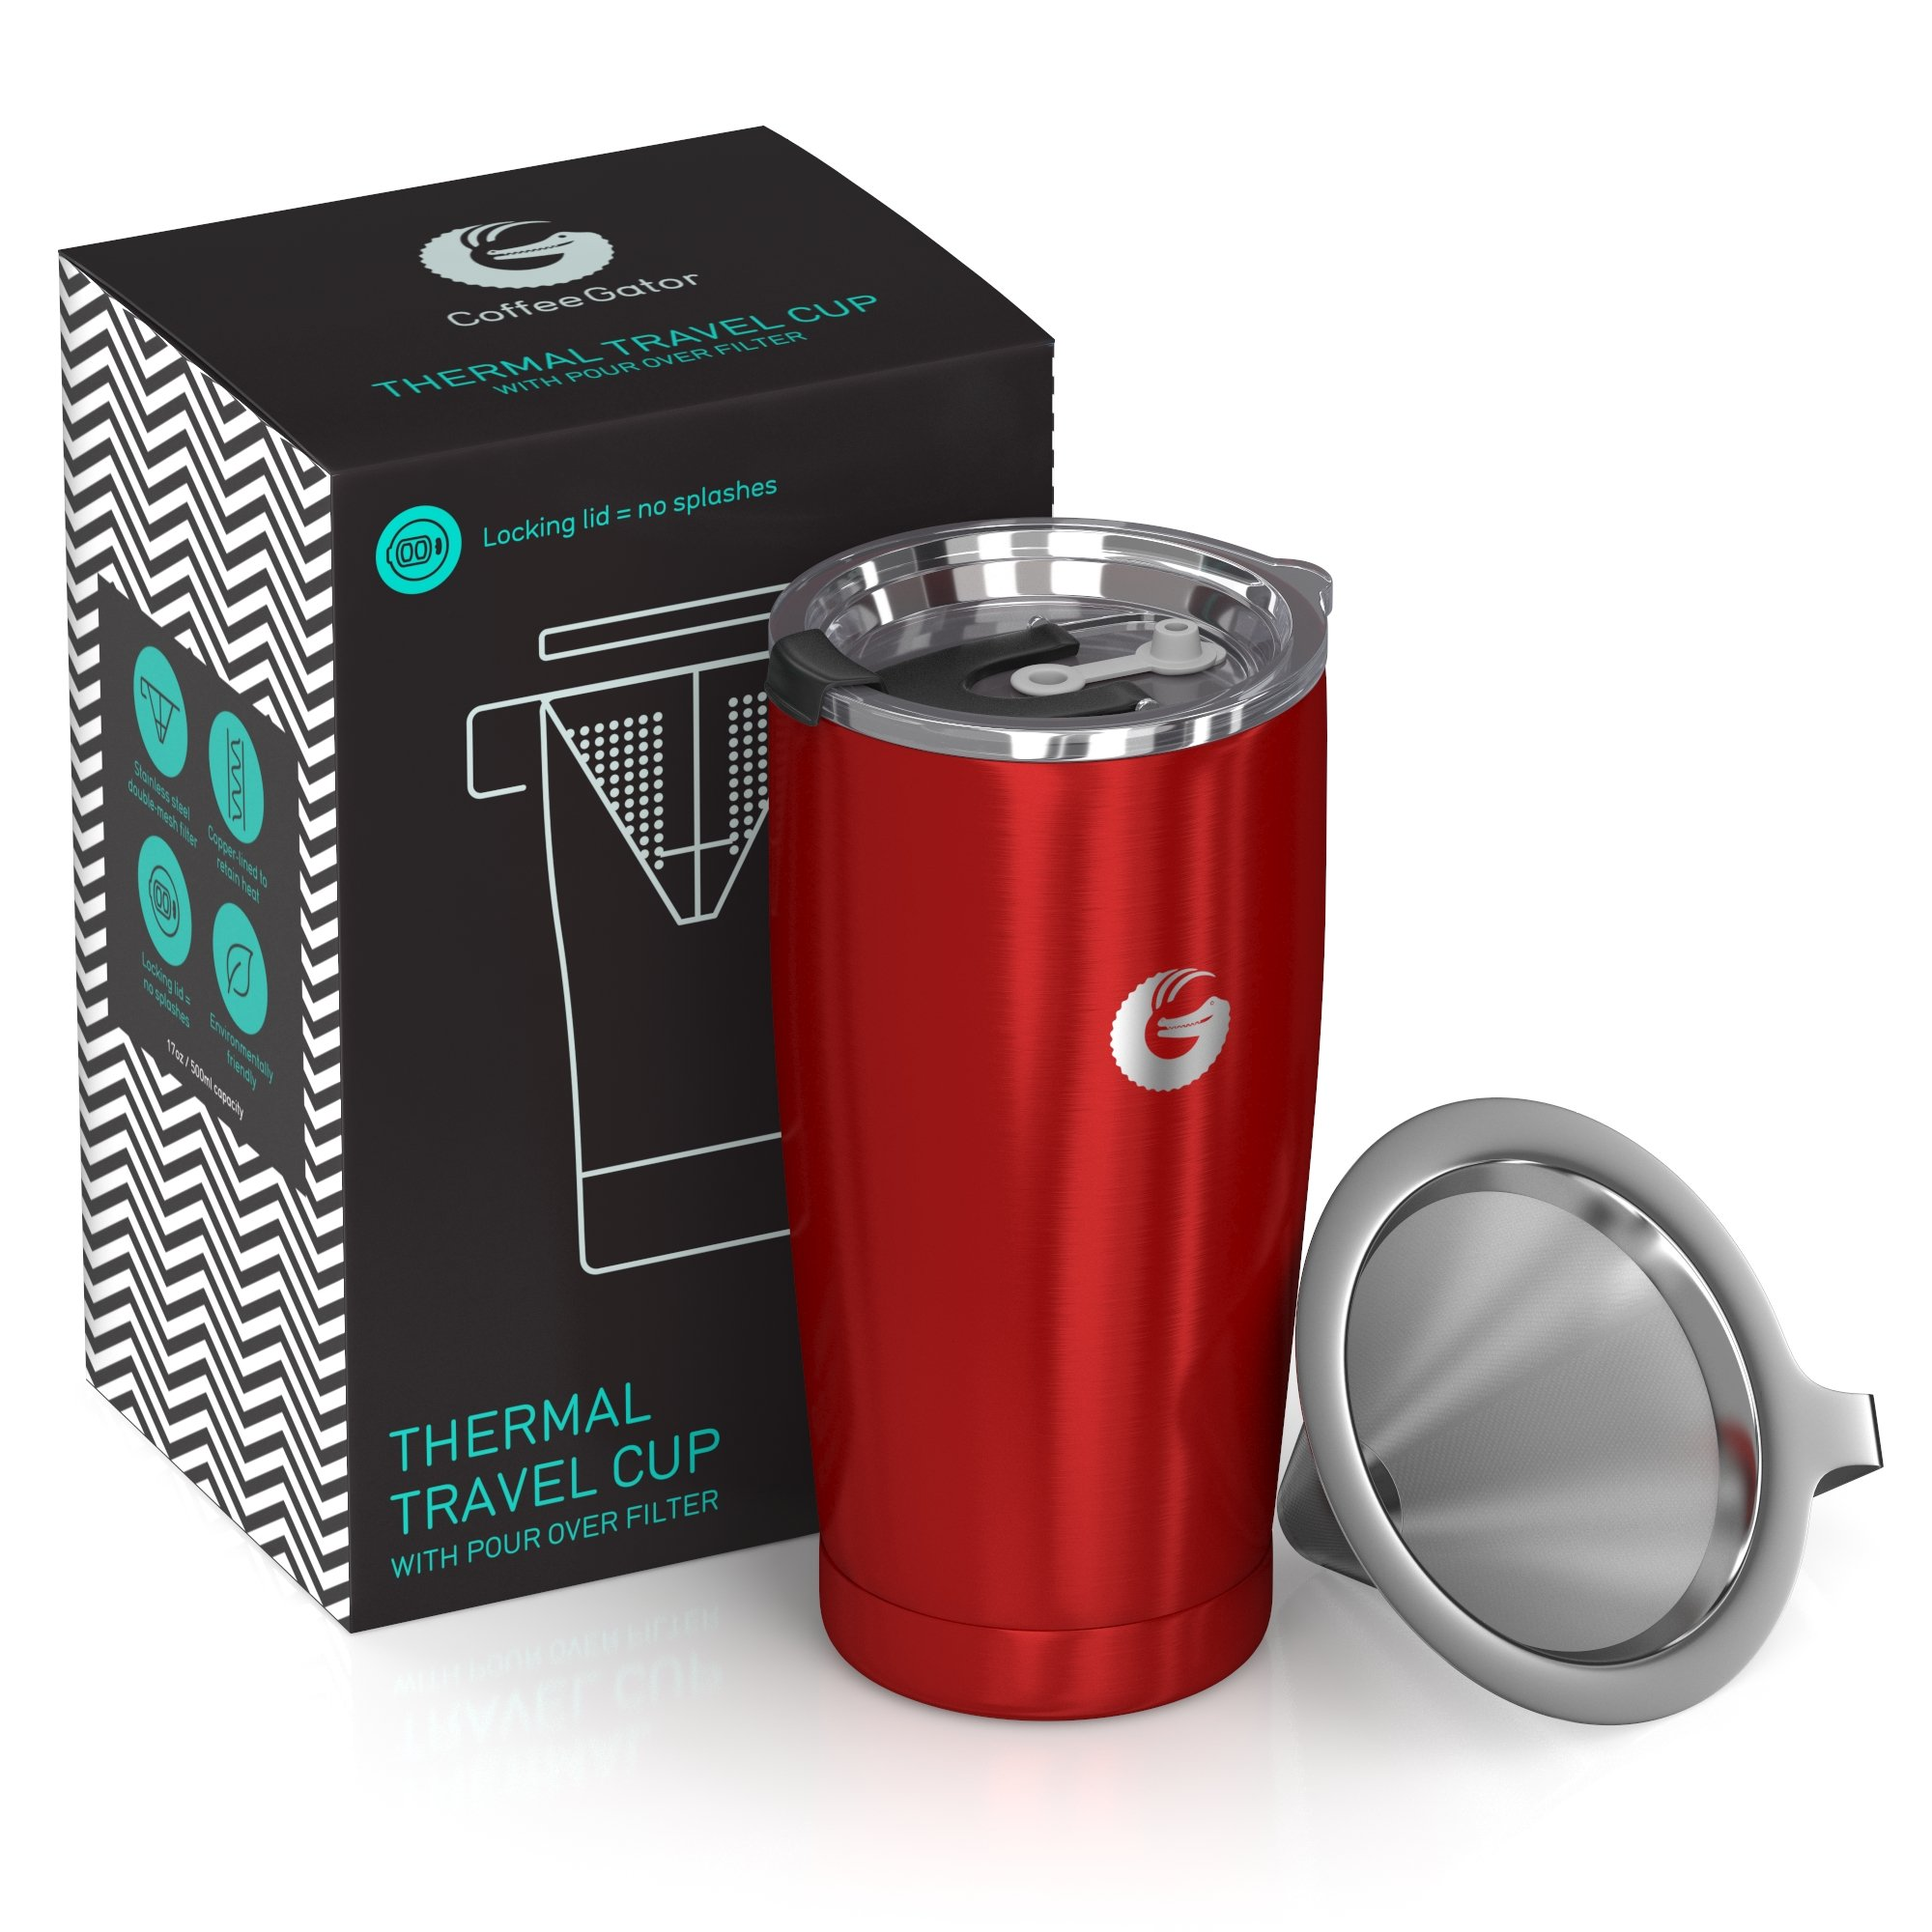 Coffee Gator Pour Over Coffee Maker - All in One Paperless Travel Brewer - 17floz - Thermal Vacuum Cup With Micro Mesh Filter - Red